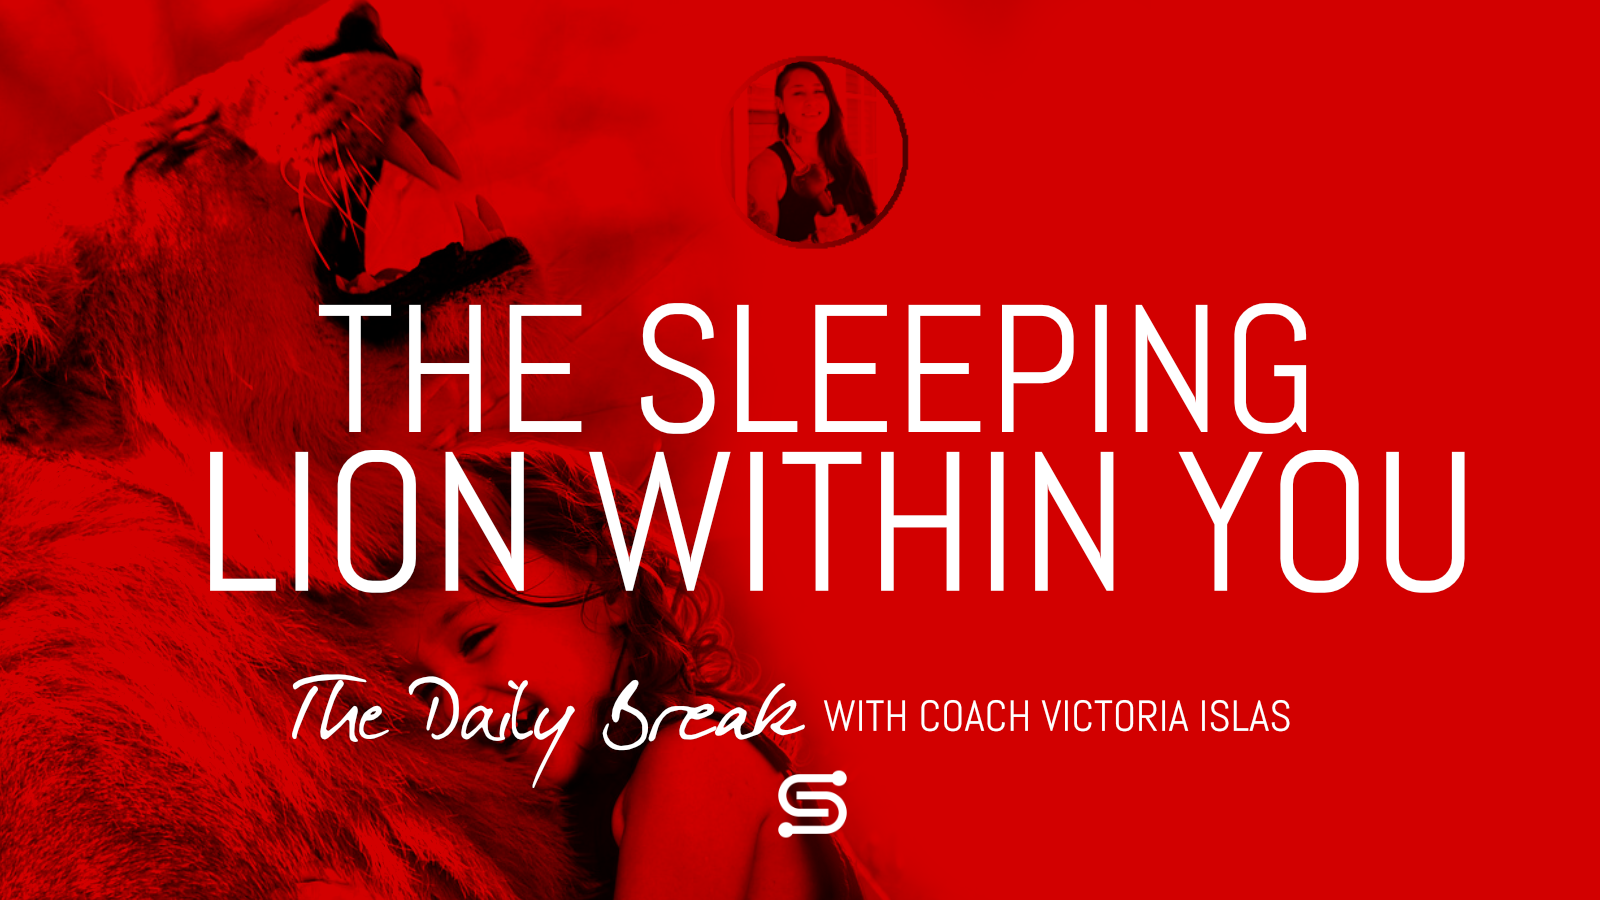 The Sleeping Lion Within You